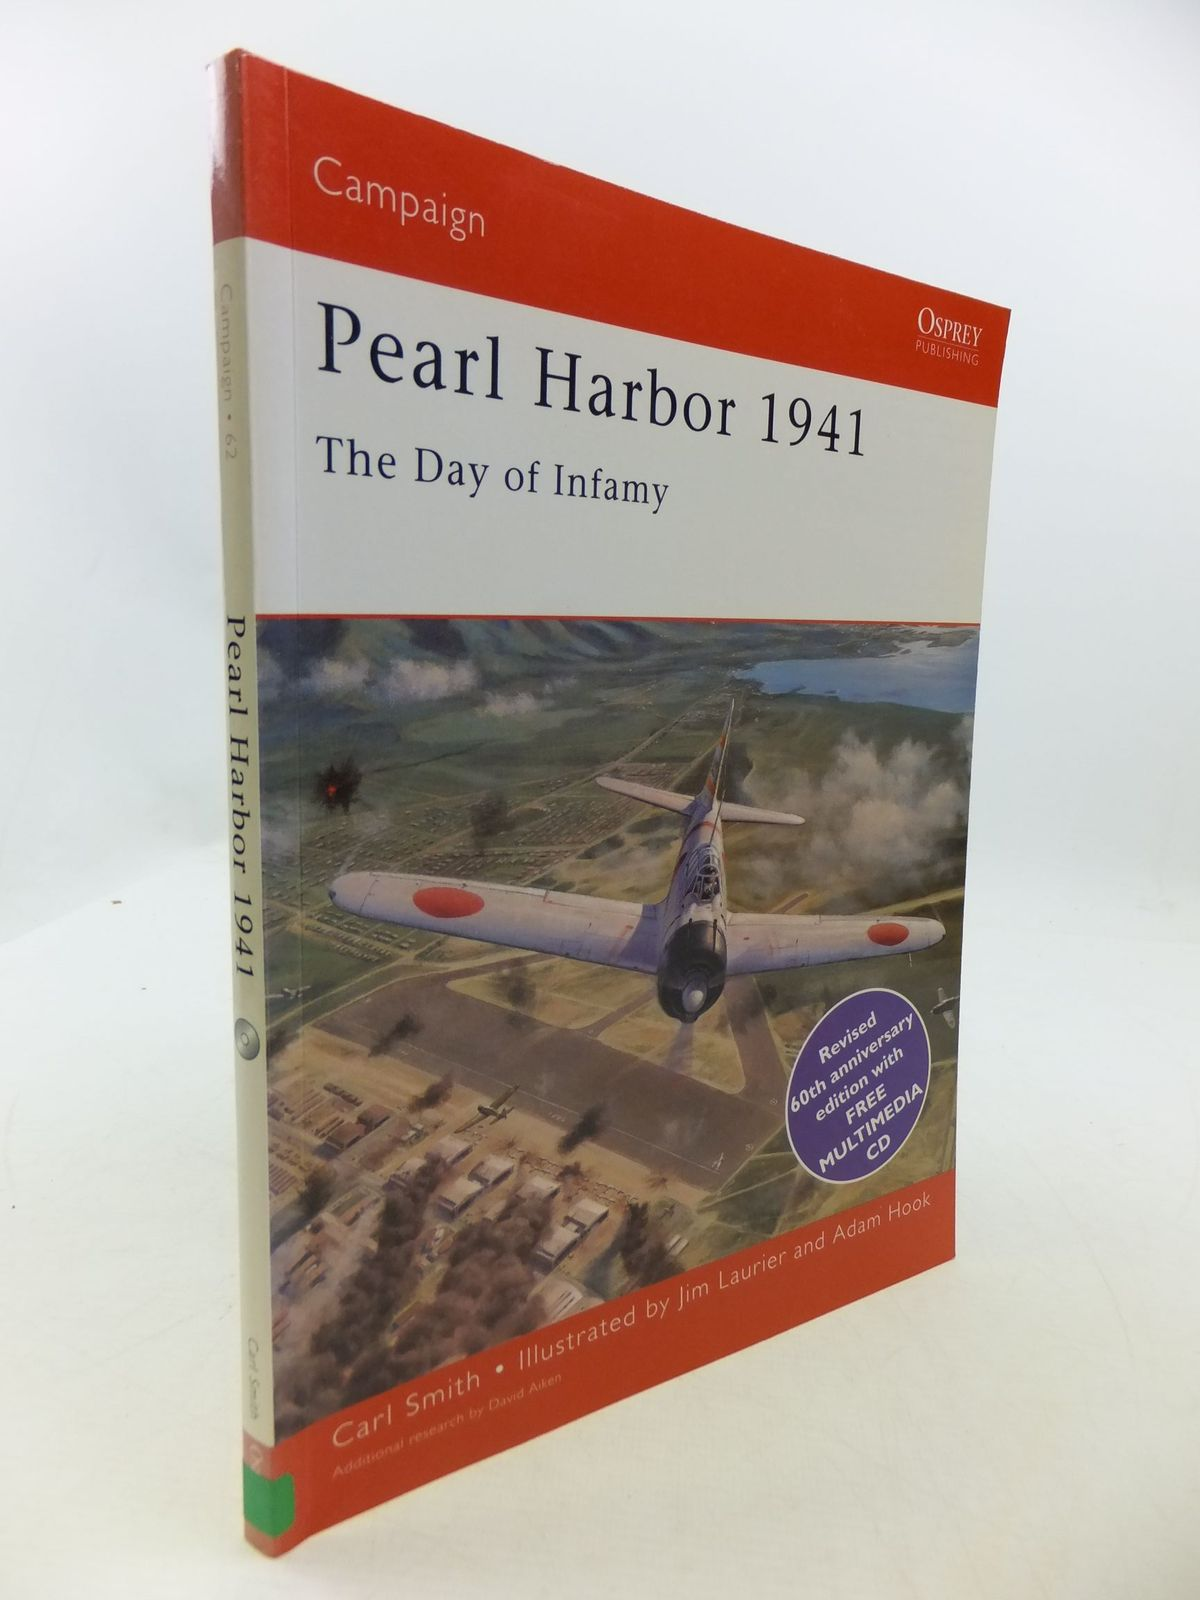 Photo of PEARL HARBOR 1974 THE DAY OF INFAMY written by Smith, Carl illustrated by Laurier, Jim Hook, Adam published by Osprey Publications Ltd (STOCK CODE: 1708442)  for sale by Stella & Rose's Books